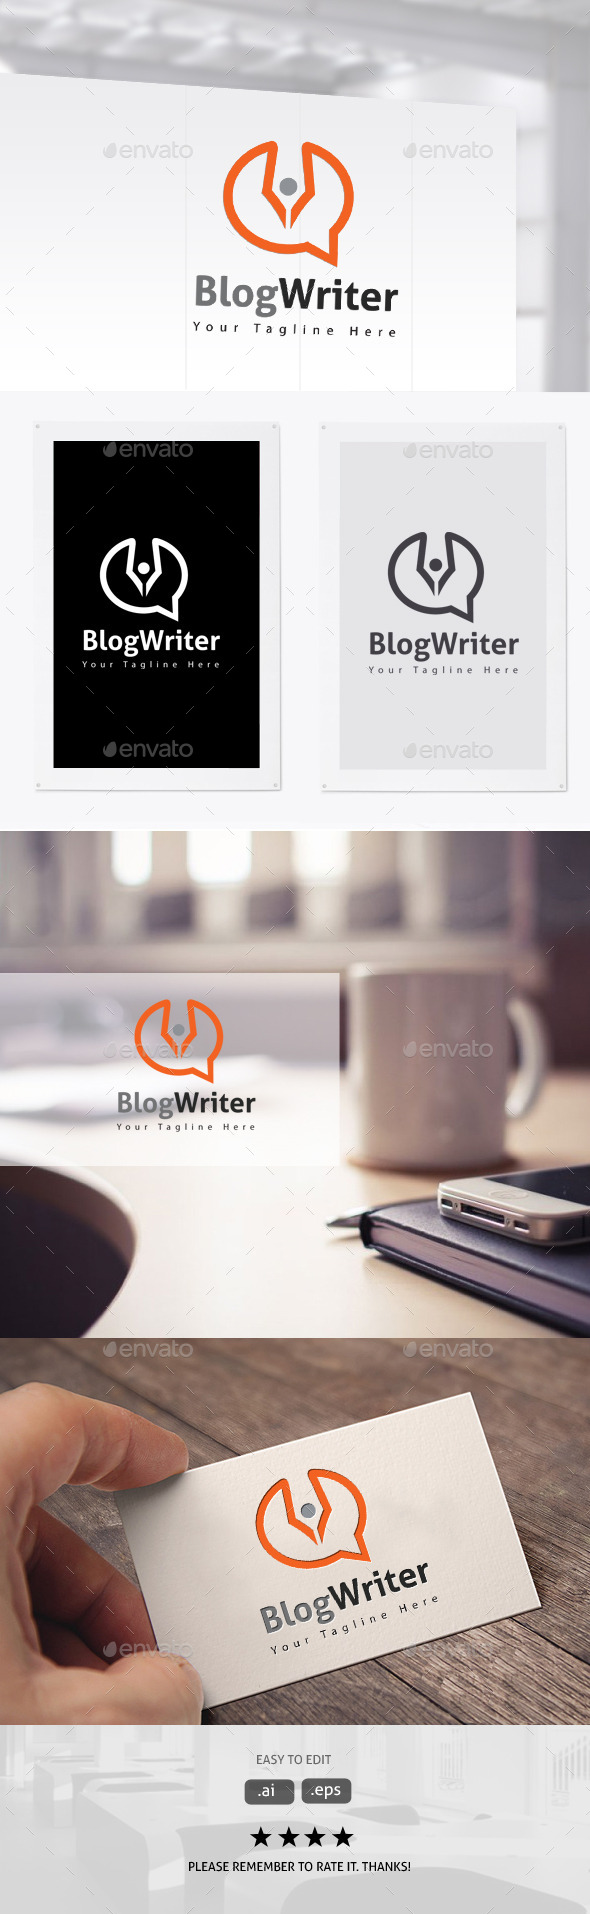 GraphicRiver Blog Writer 11306190